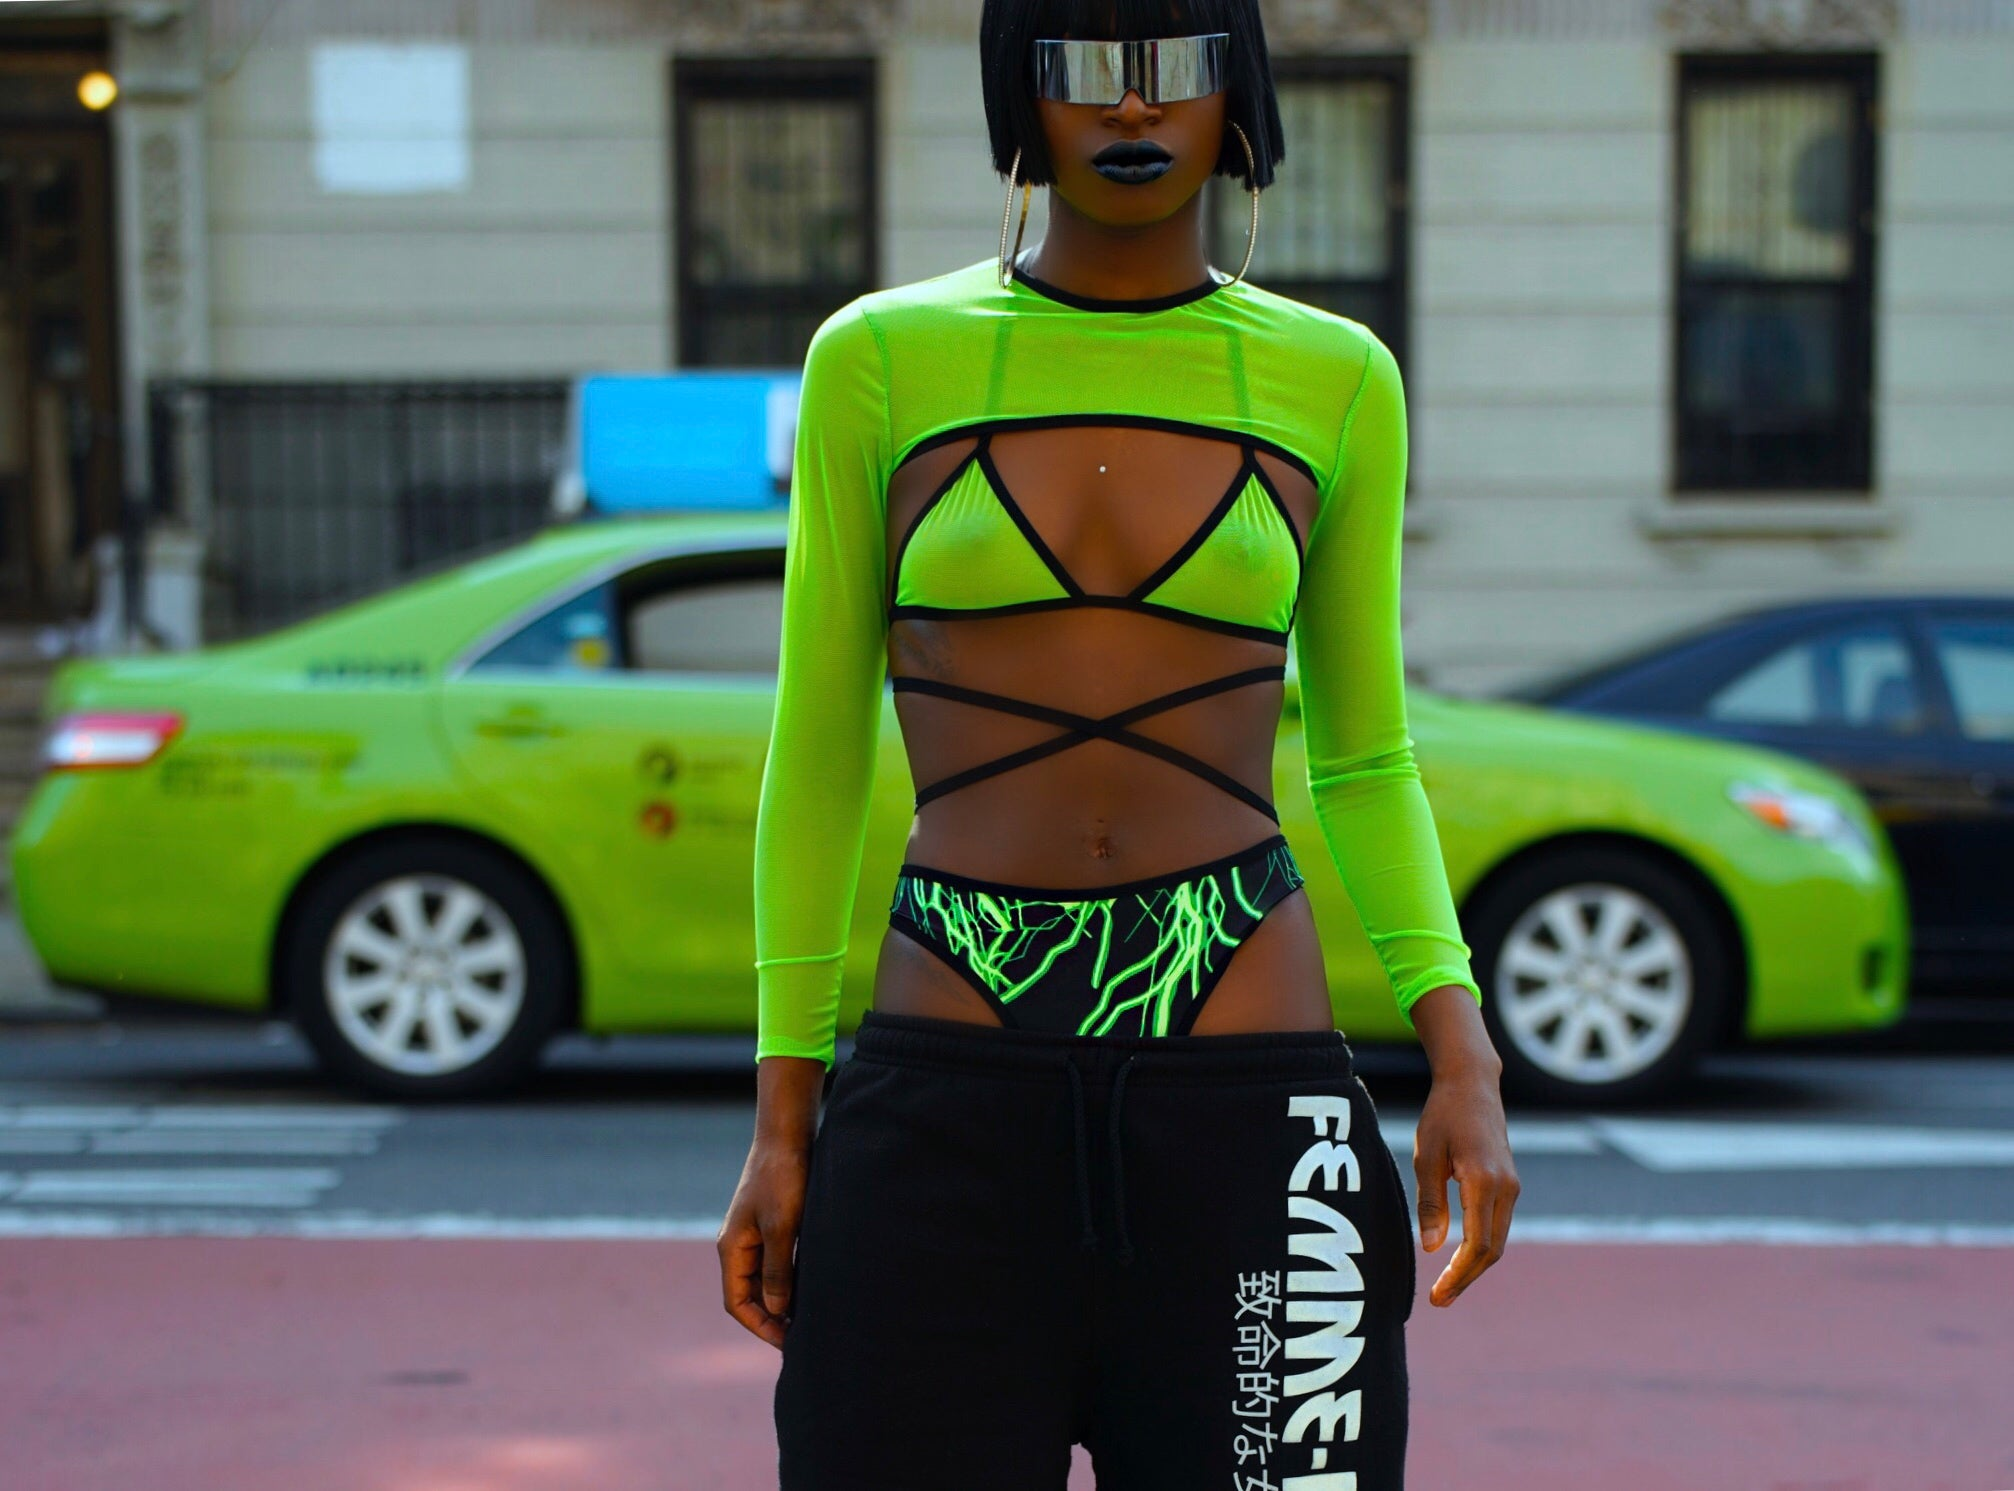 THE 'CYBER ' MESH SET